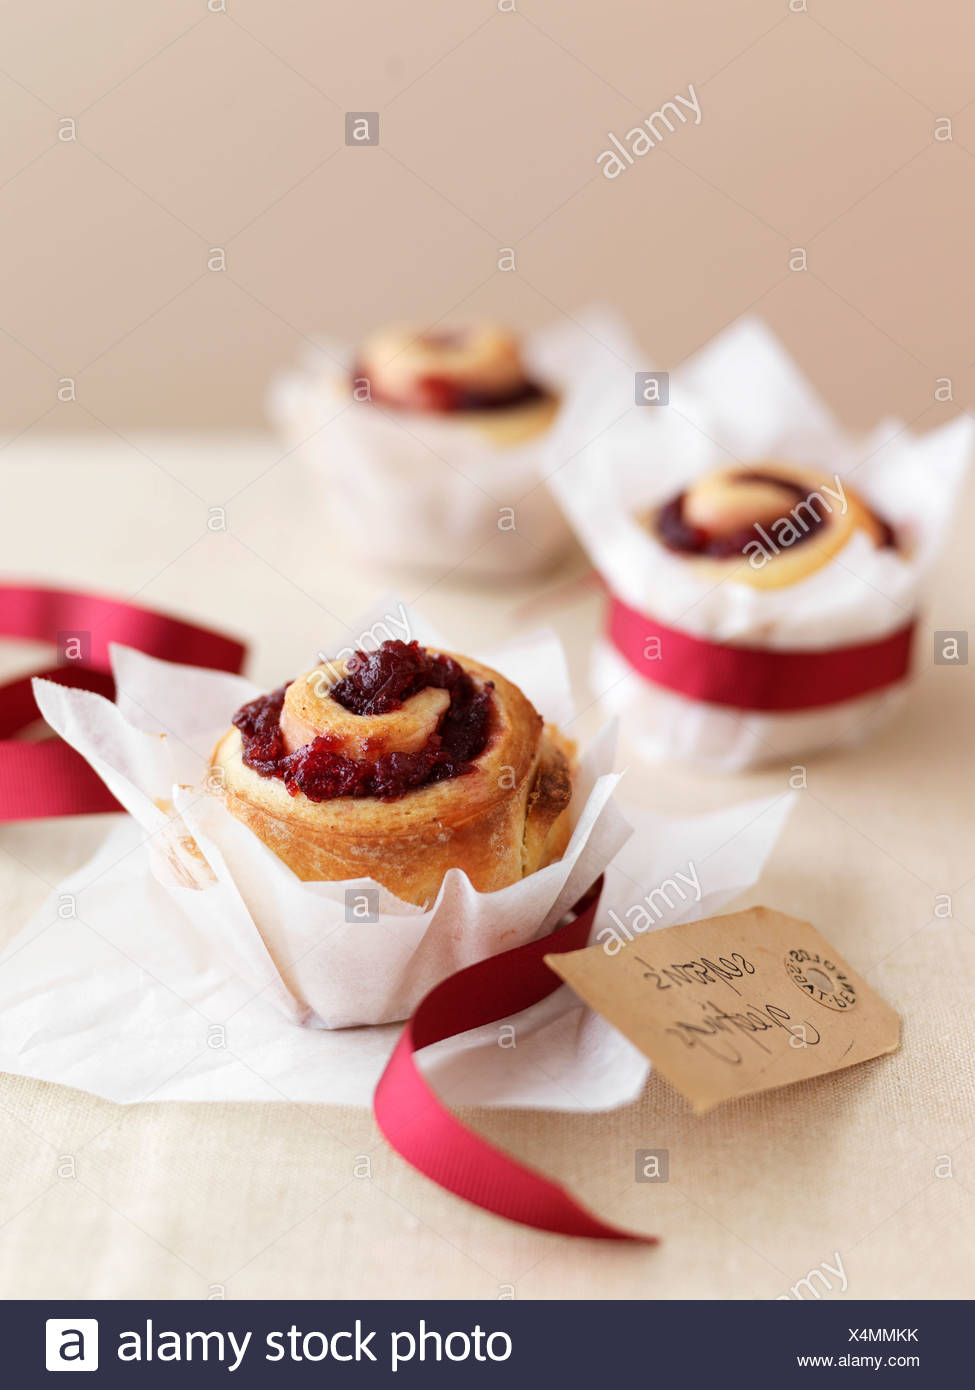 Redcurrant jelly pastry rolls Stock Photo